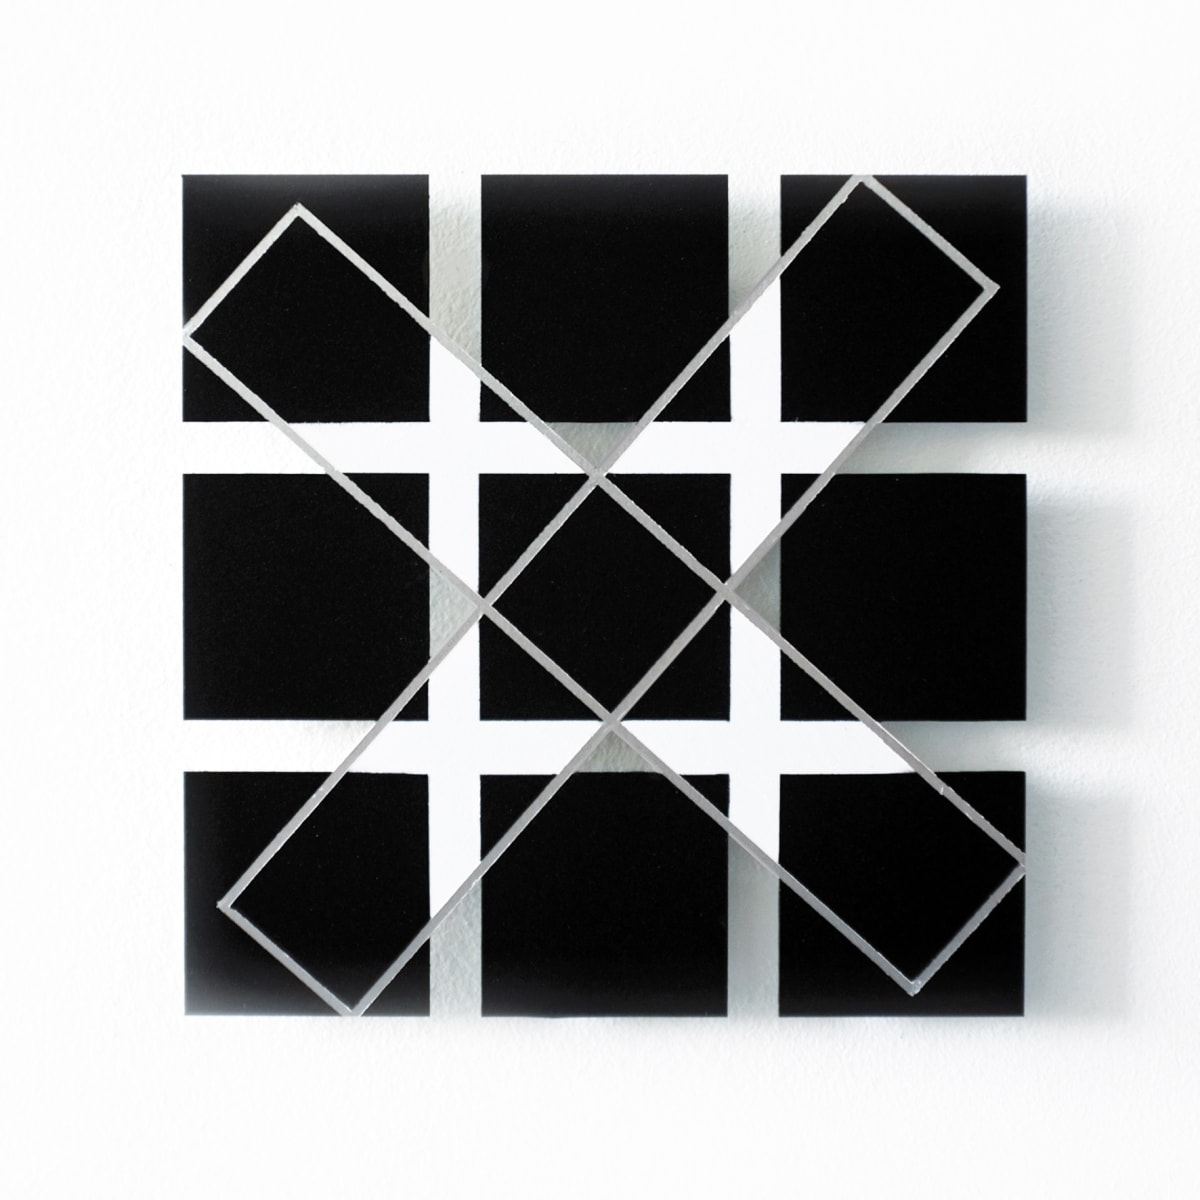 tonneke-sengers, artist, it shows on aluminium symmetrical forms in grey, white and mainly black